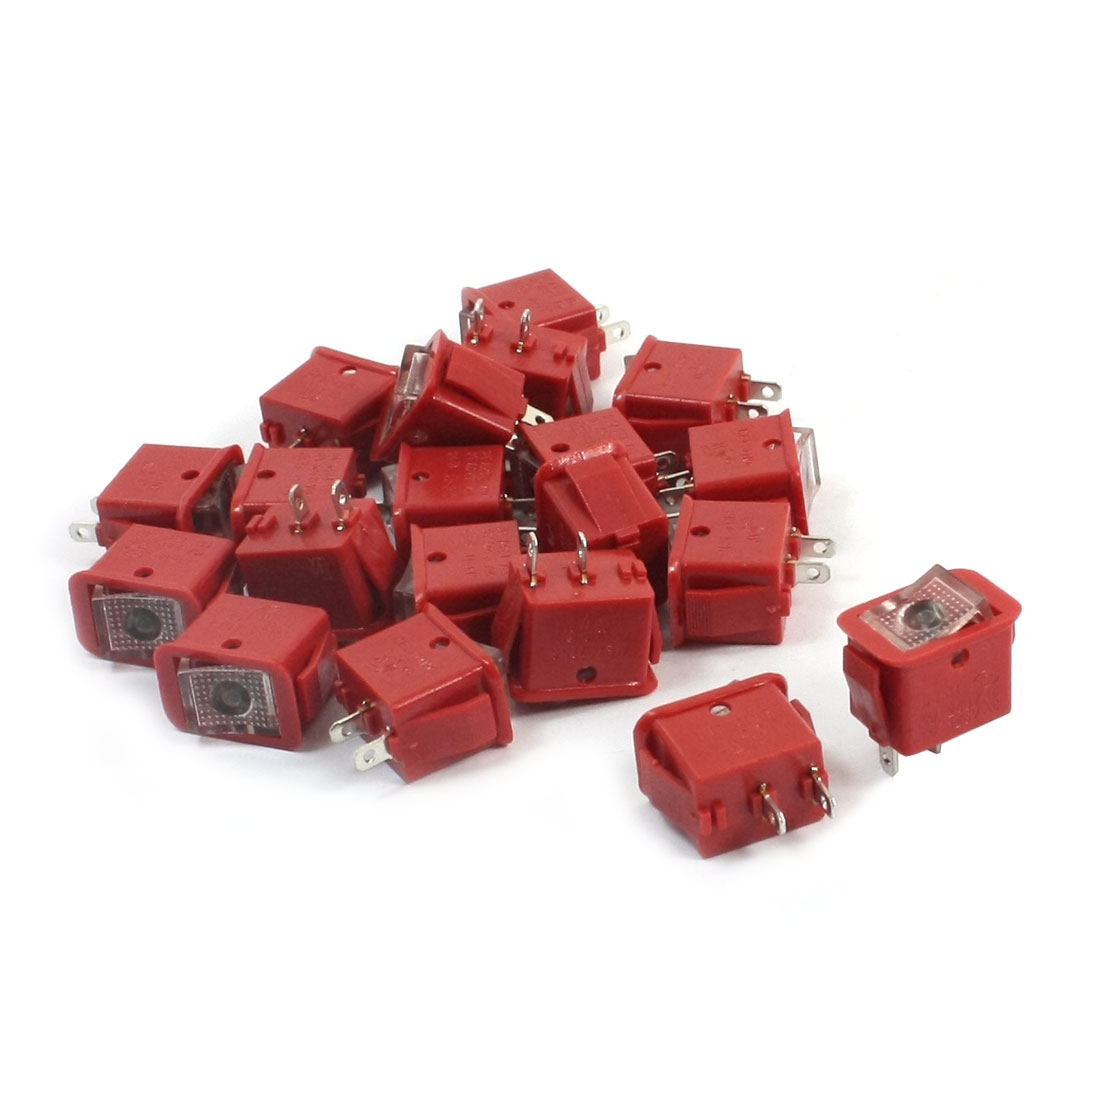 20pcs Red Latching SPST 2-Position Rocker Switch AC250V/10A 125V/13A